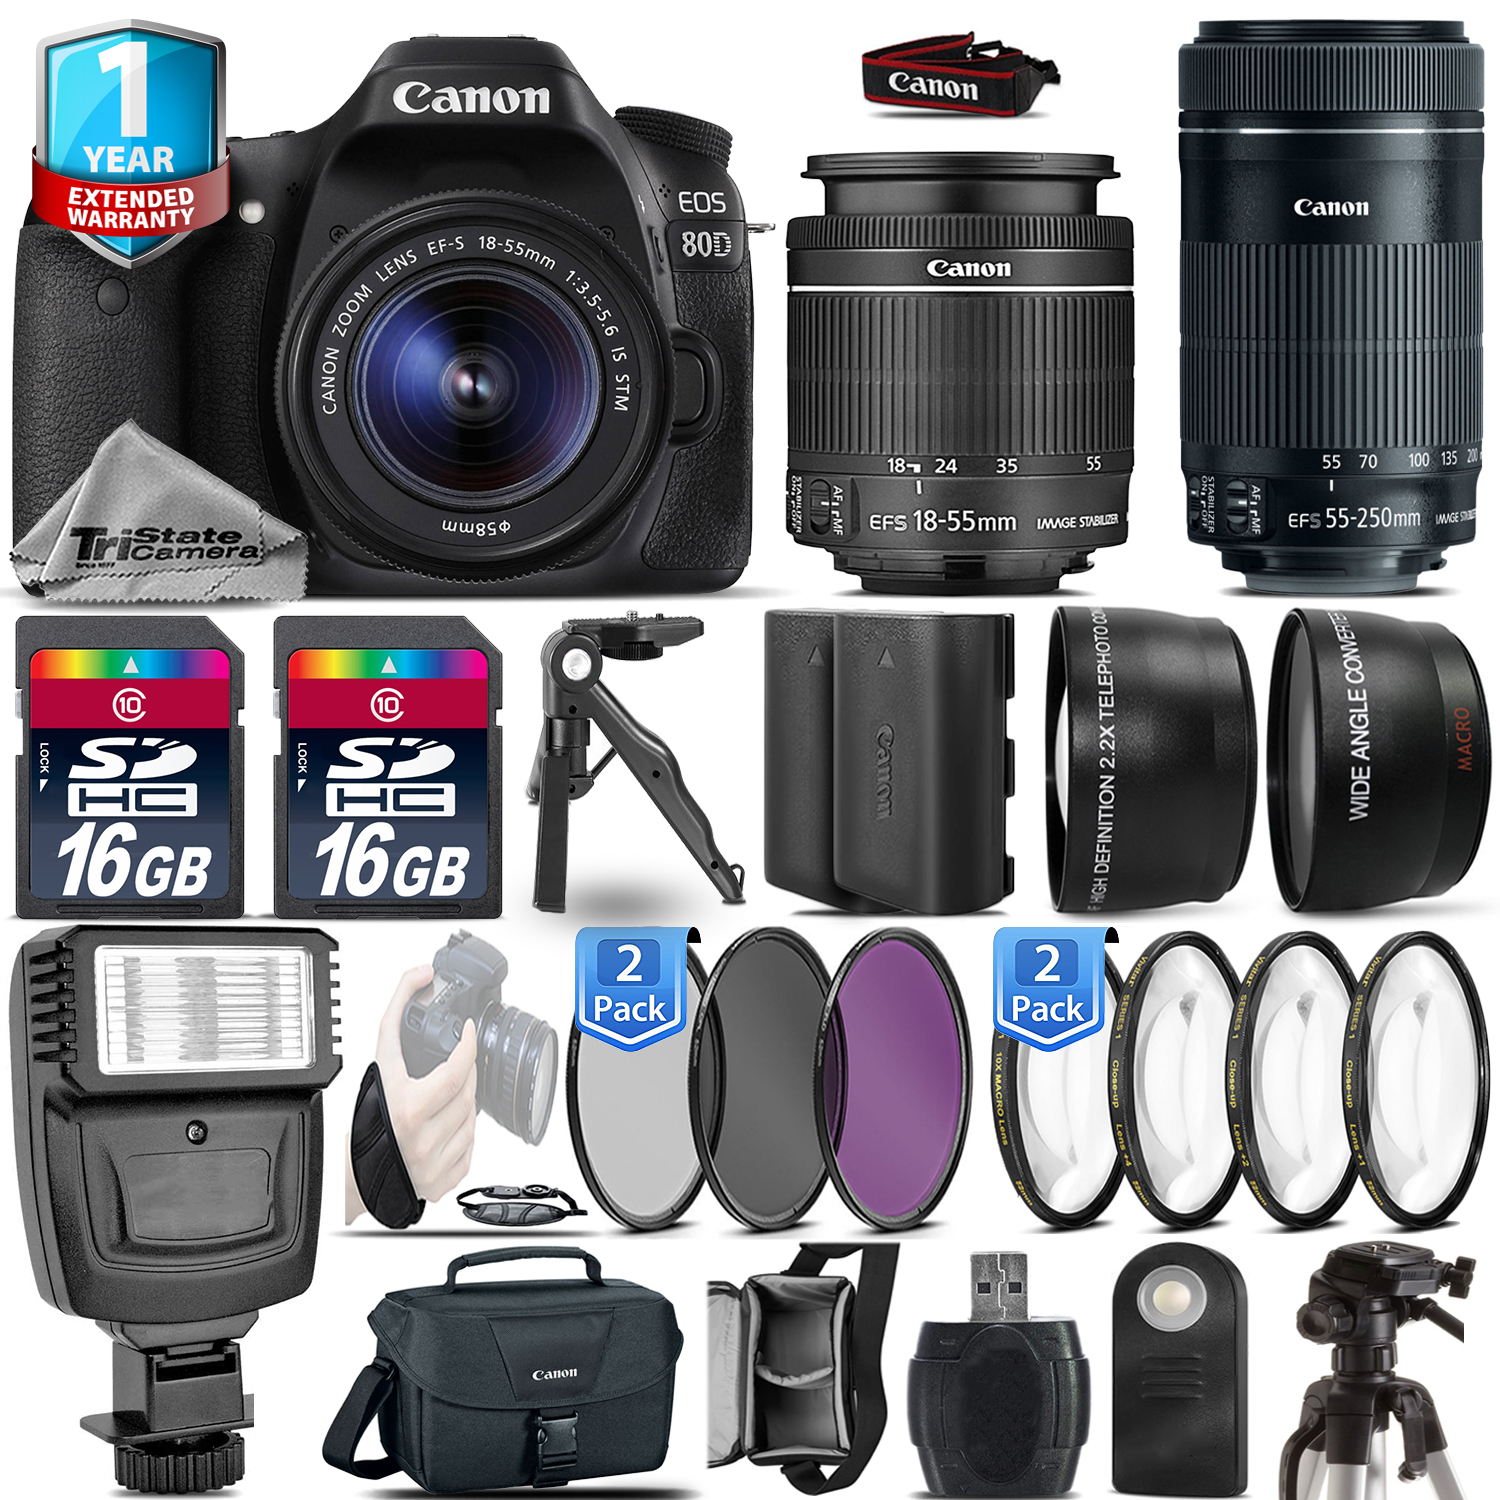 EOS 80D DSLR Camera + 18-55mm IS + 55-200mm IS + EXT BAT + 1yr Warranty *FREE SHIPPING*